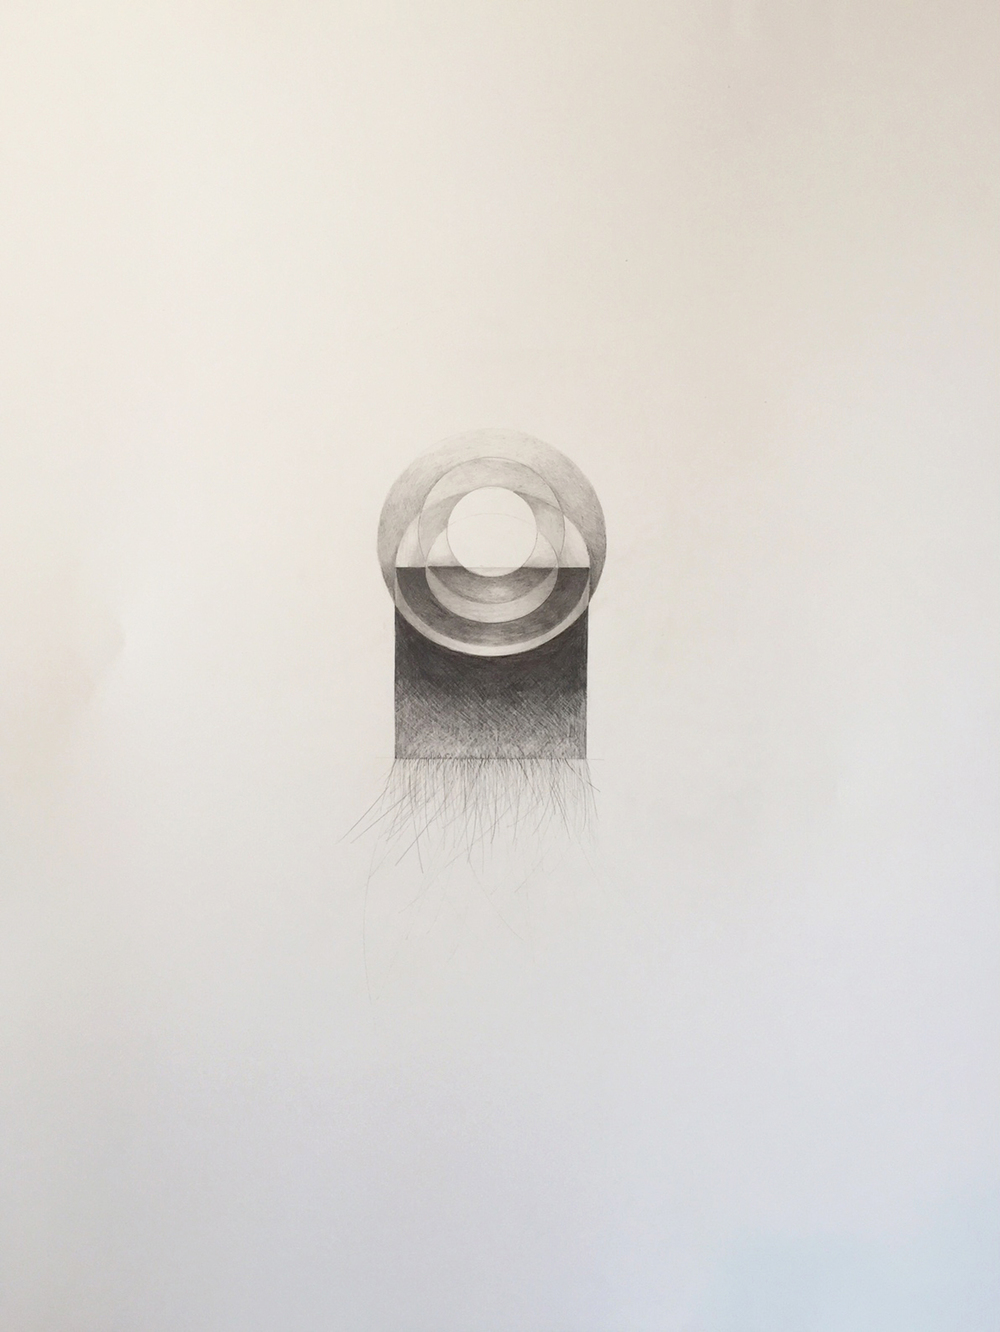 Ghidini, Grace 8, 2015, graphite and mica dust on paper, 28 1/2 x 22 1/2 inches